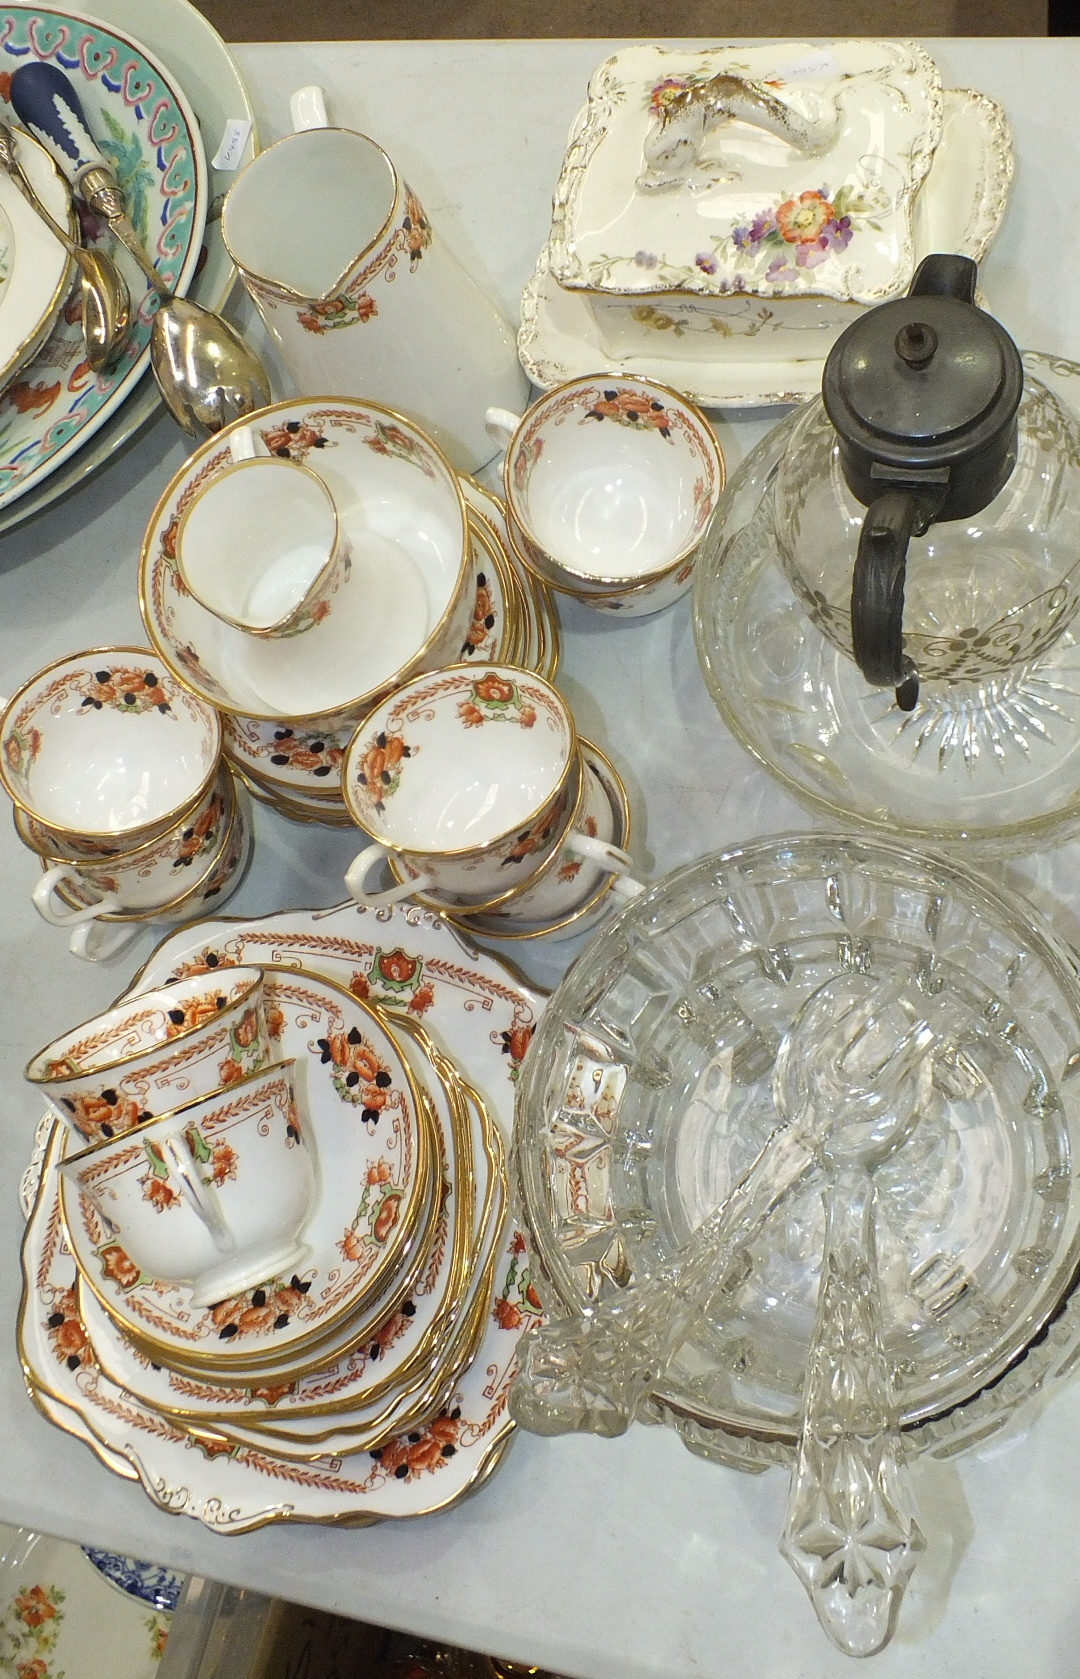 Lot 140 - Thirty-seven pieces of Royal Albert Crown China floral-decorated teaware, various other teaware,